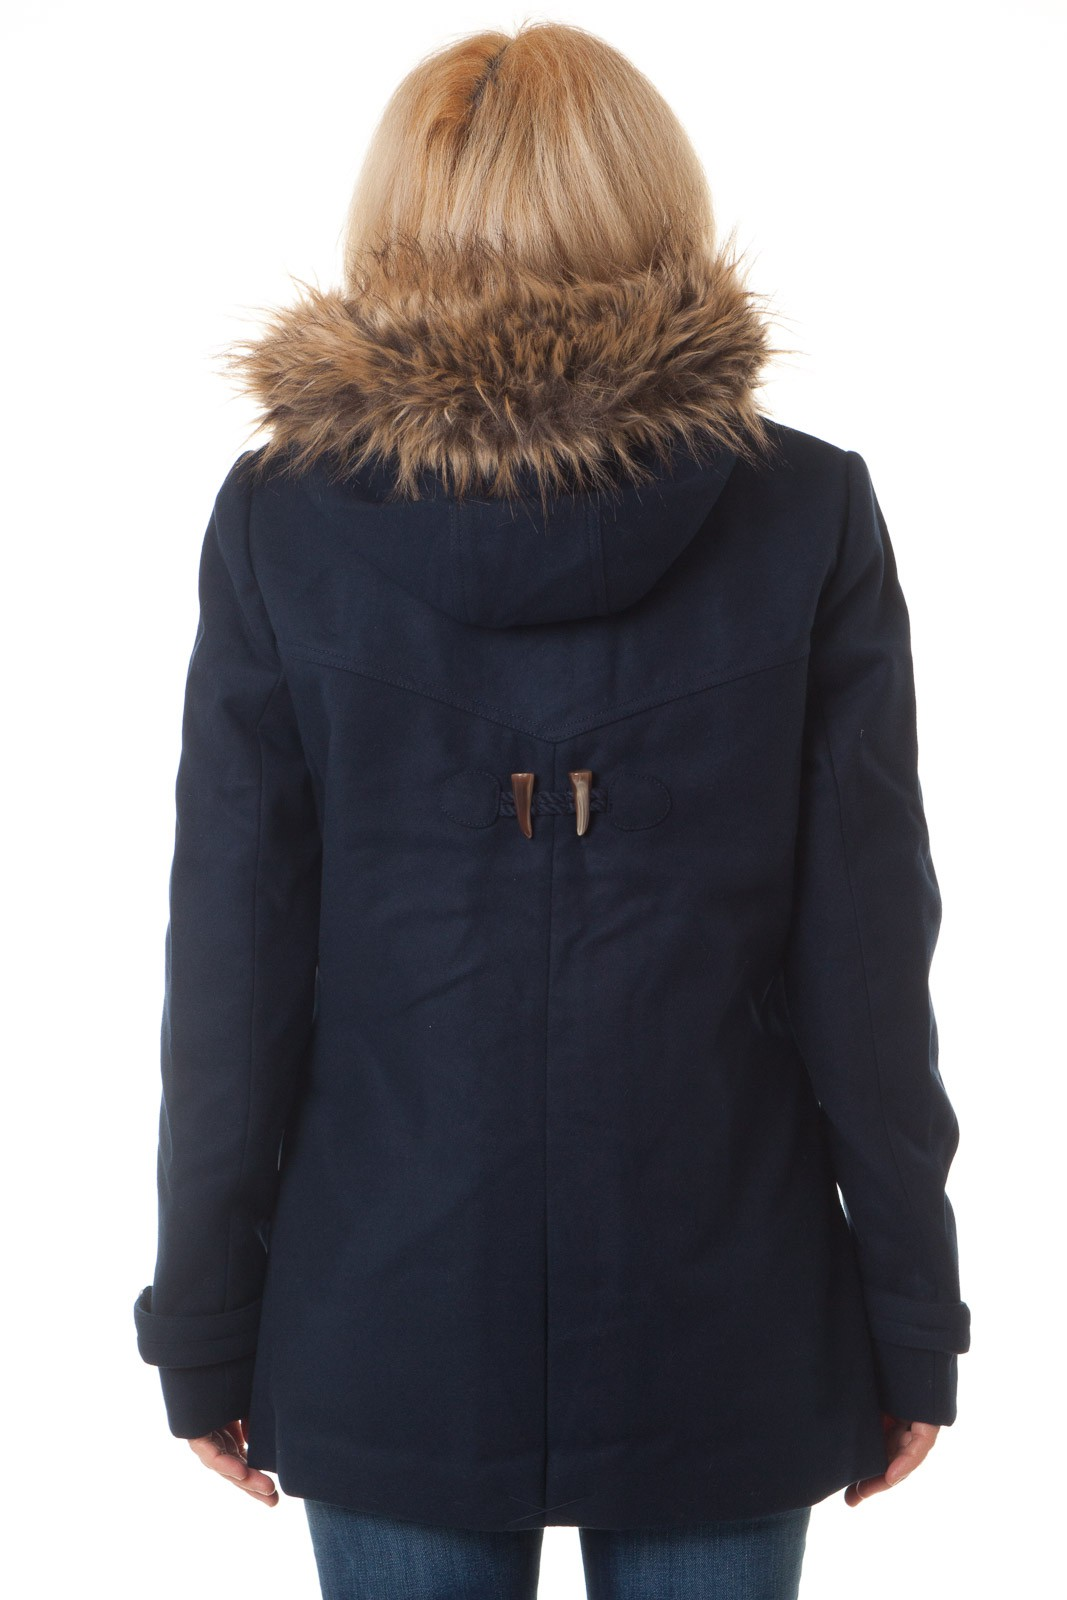 tom tailor damen jacke dufflecoat mit kapuze und abnehmbarem fellkragen navy ebay. Black Bedroom Furniture Sets. Home Design Ideas